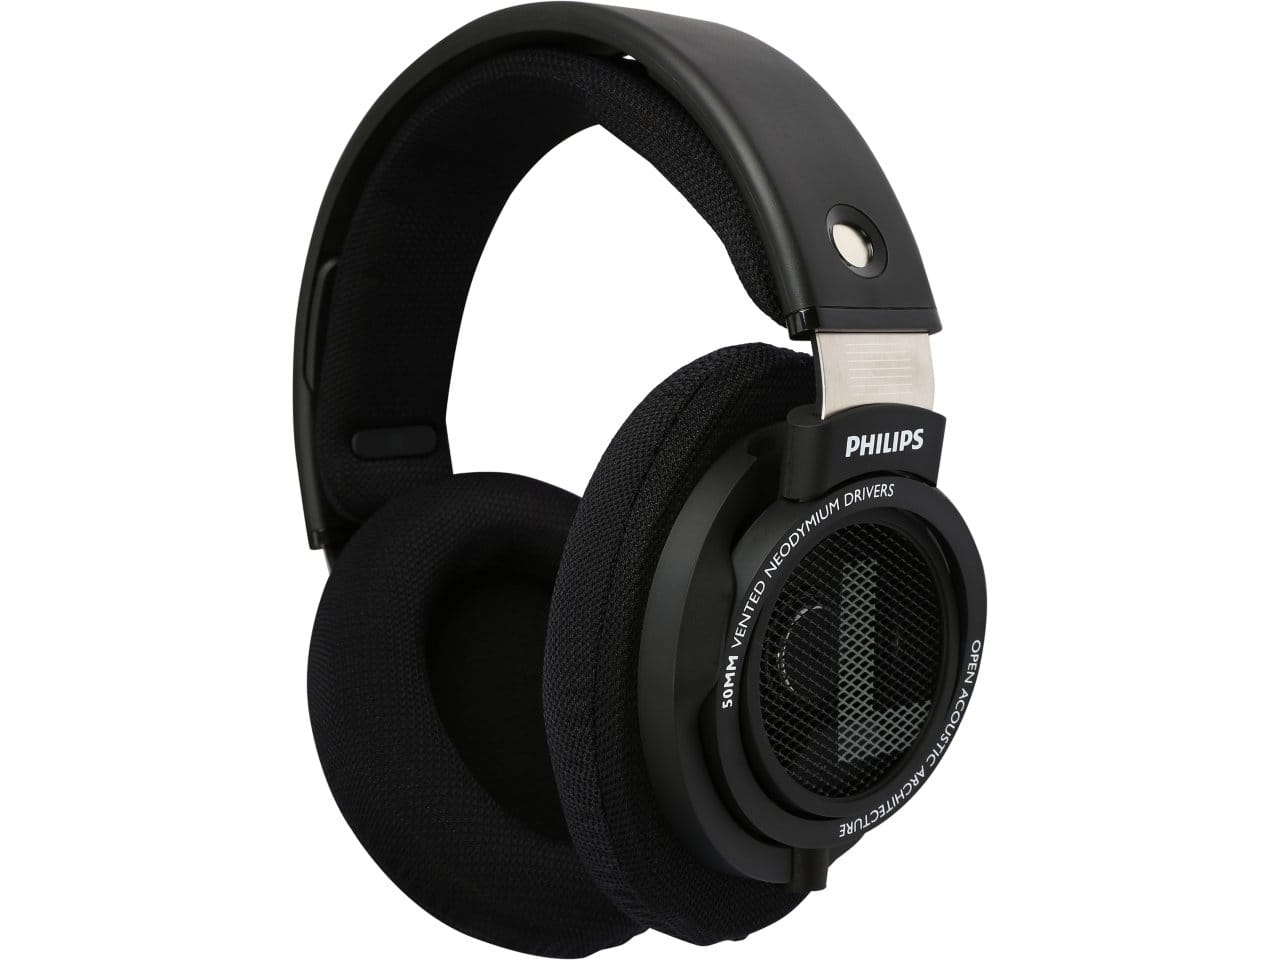 Philips SHP9500 Over-Ear Headphones for $49.99 AR, Sennheiser HD518 Over-Ear Headphones for $44.95 & More + Free Shipping @ Newegg.com